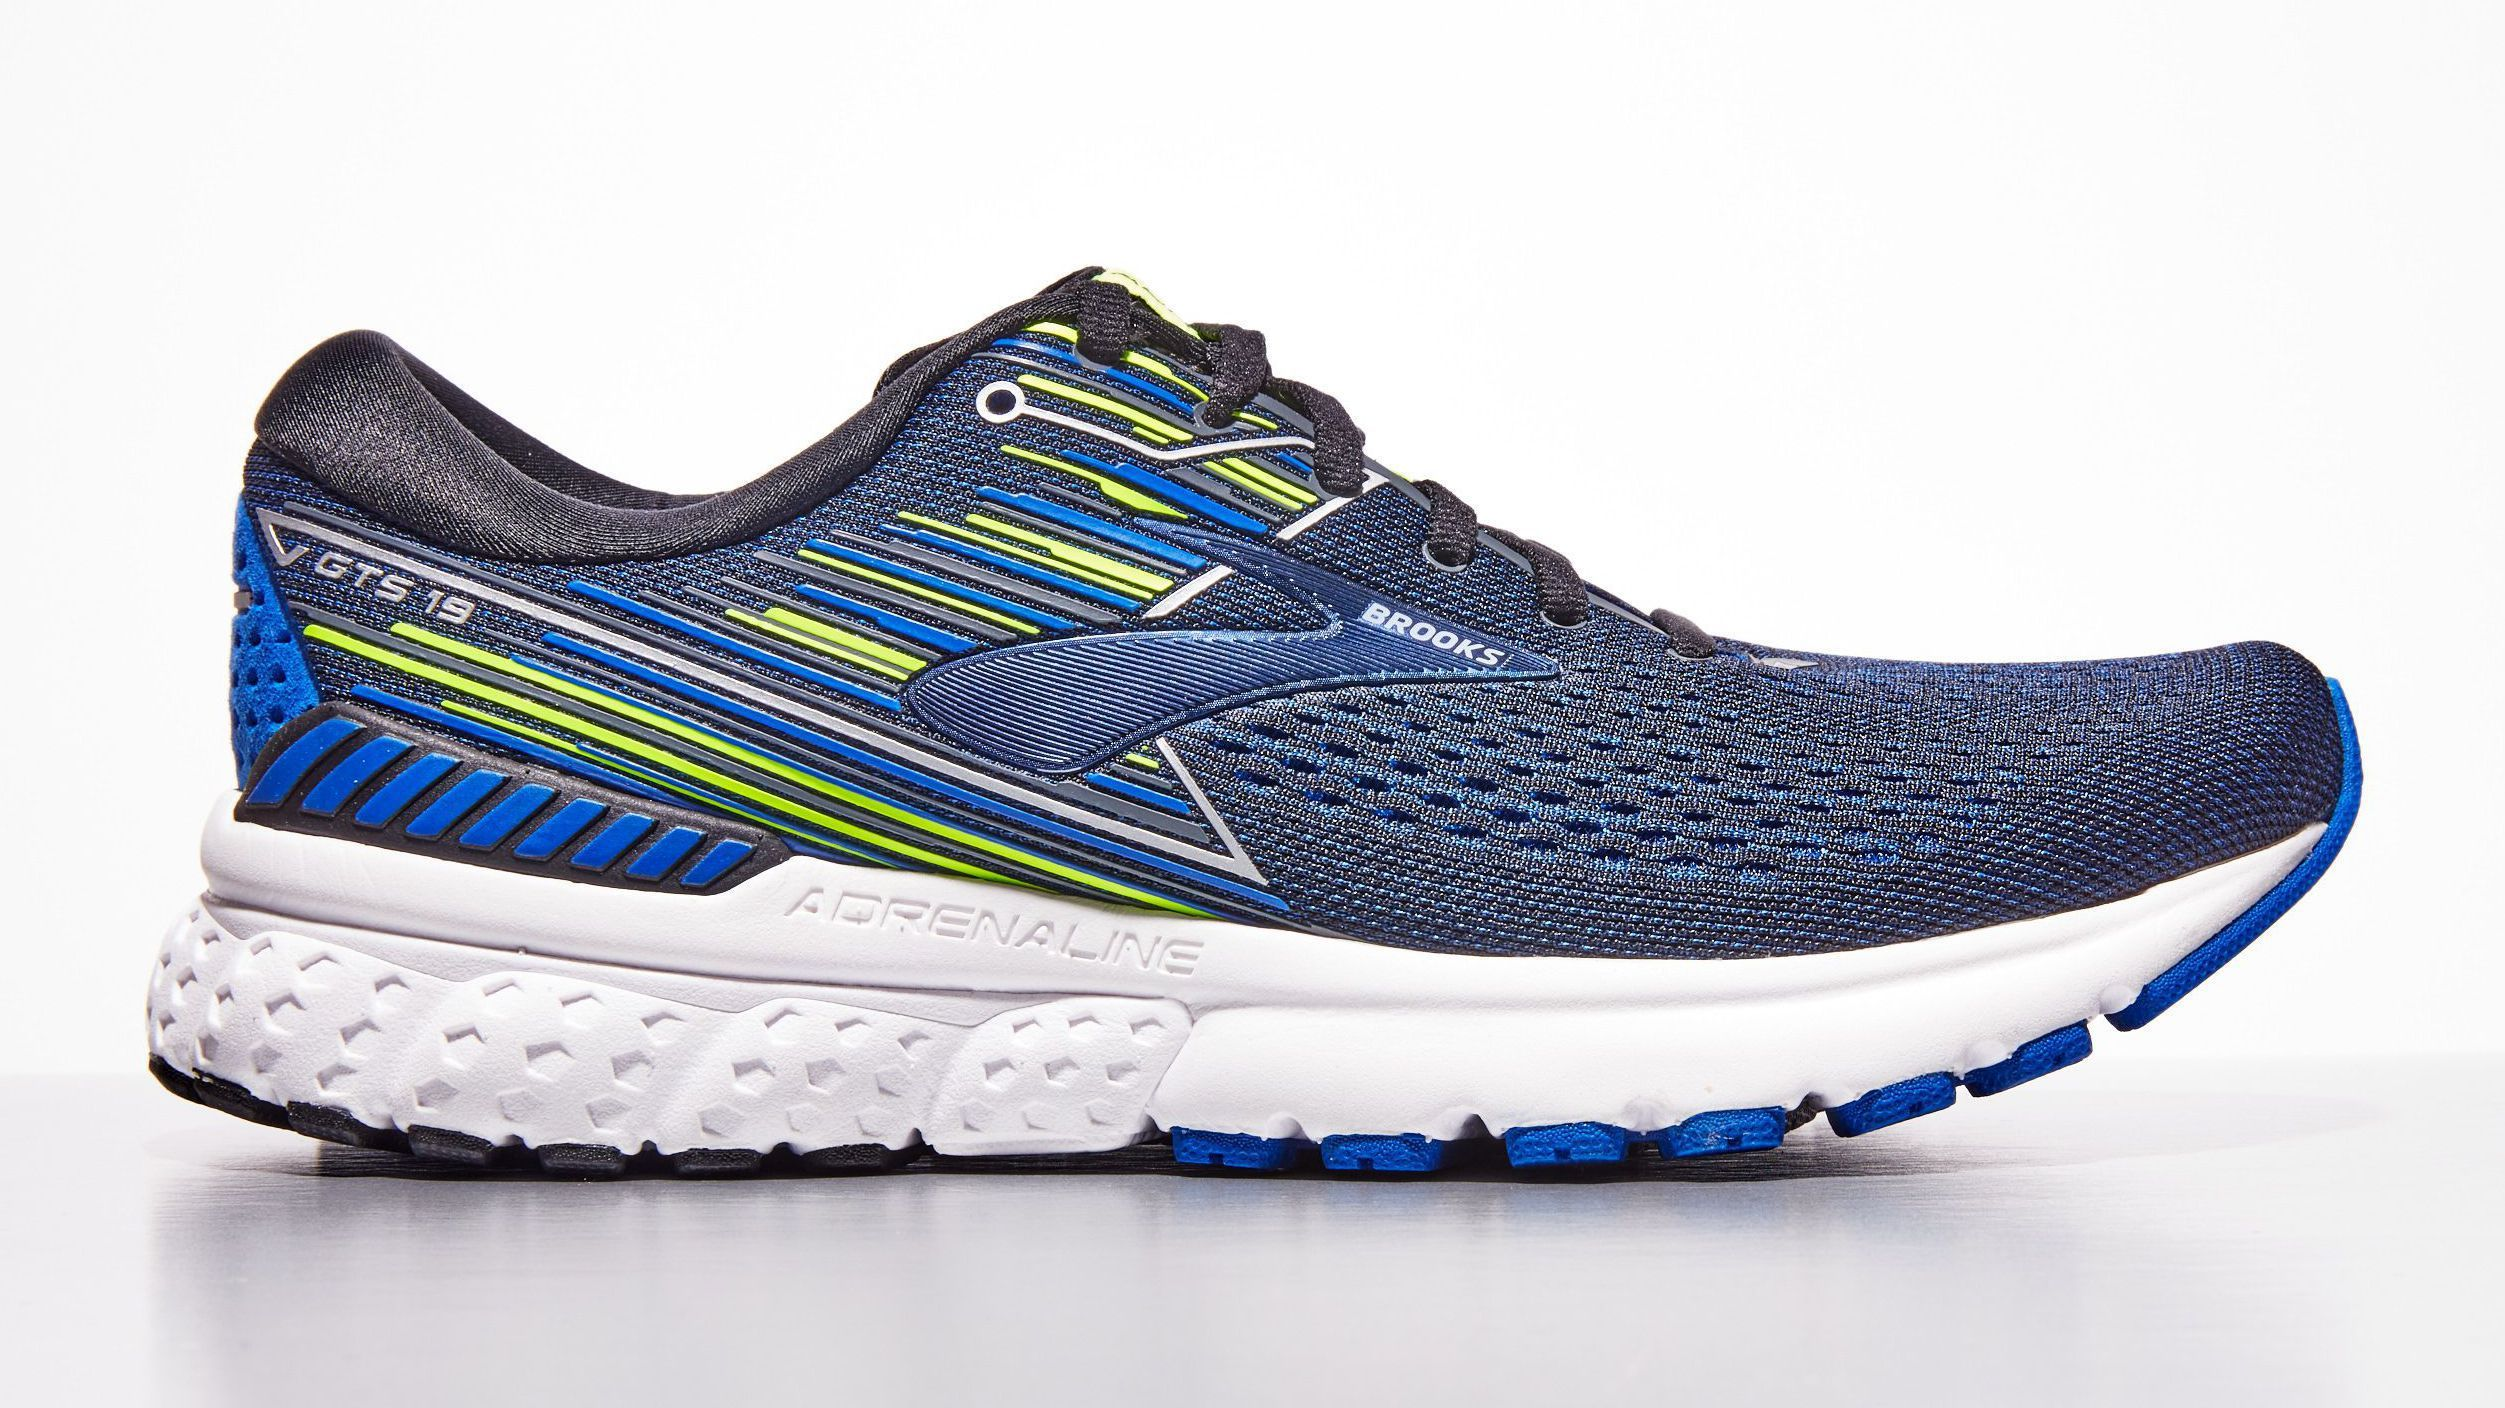 0b7f933ba795 Best Brooks Running Shoes | Brooks Running Shoe Reviews 2019